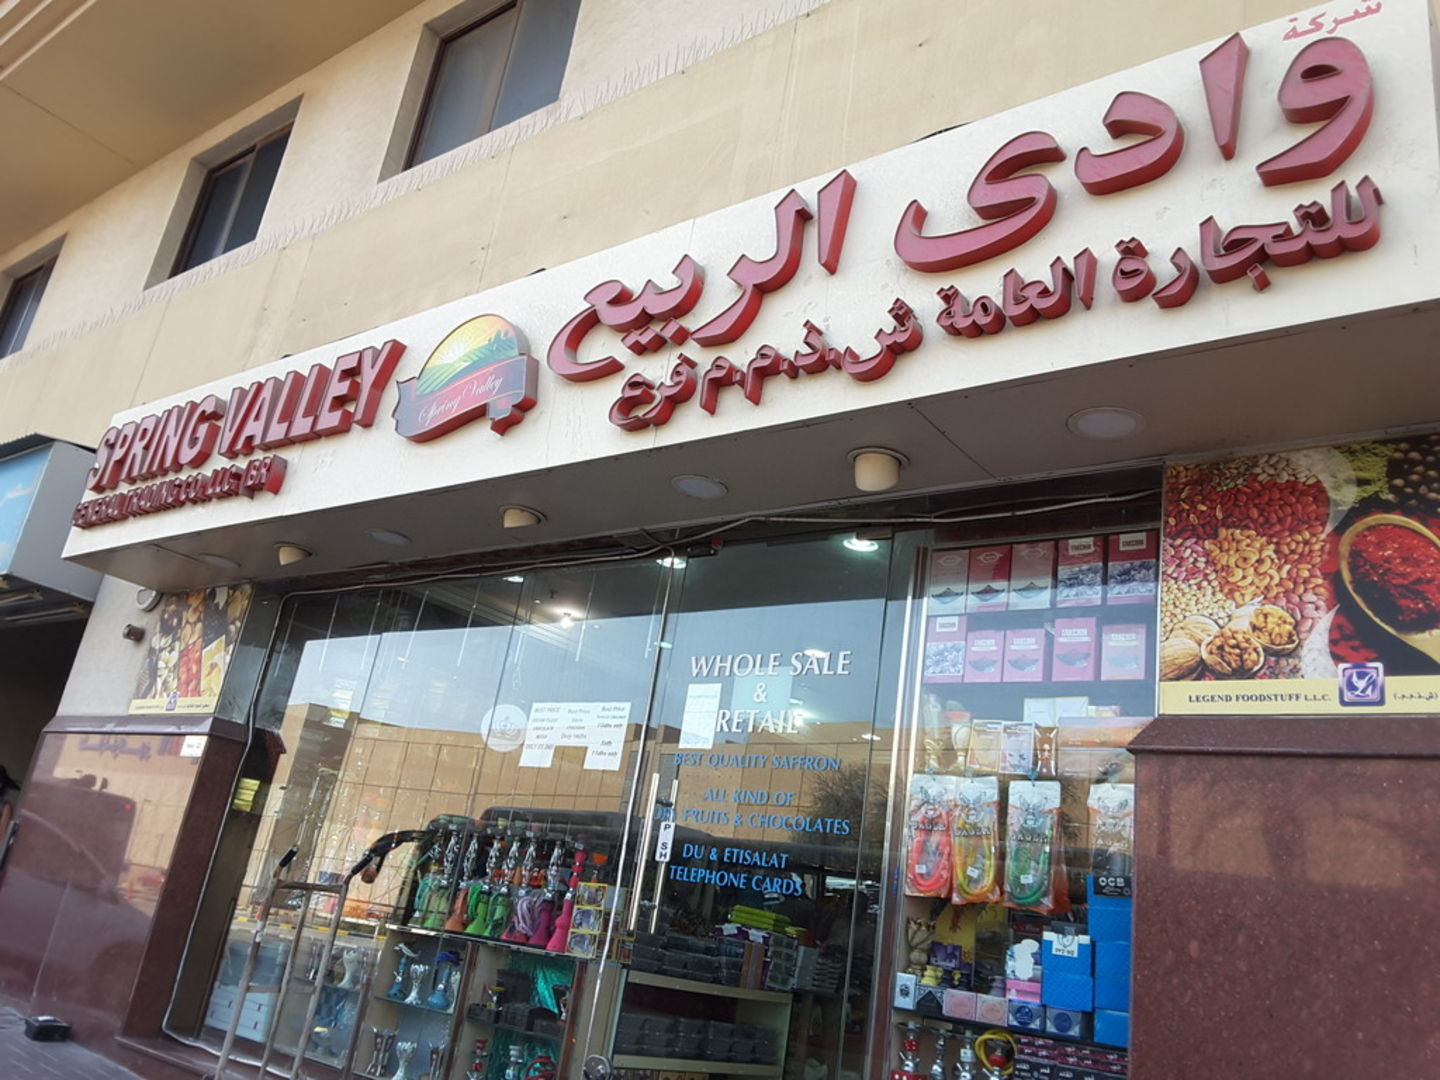 HiDubai-business-spring-valley-general-trading-co-b2b-services-food-stuff-trading-al-raffa-al-raffa-dubai-2